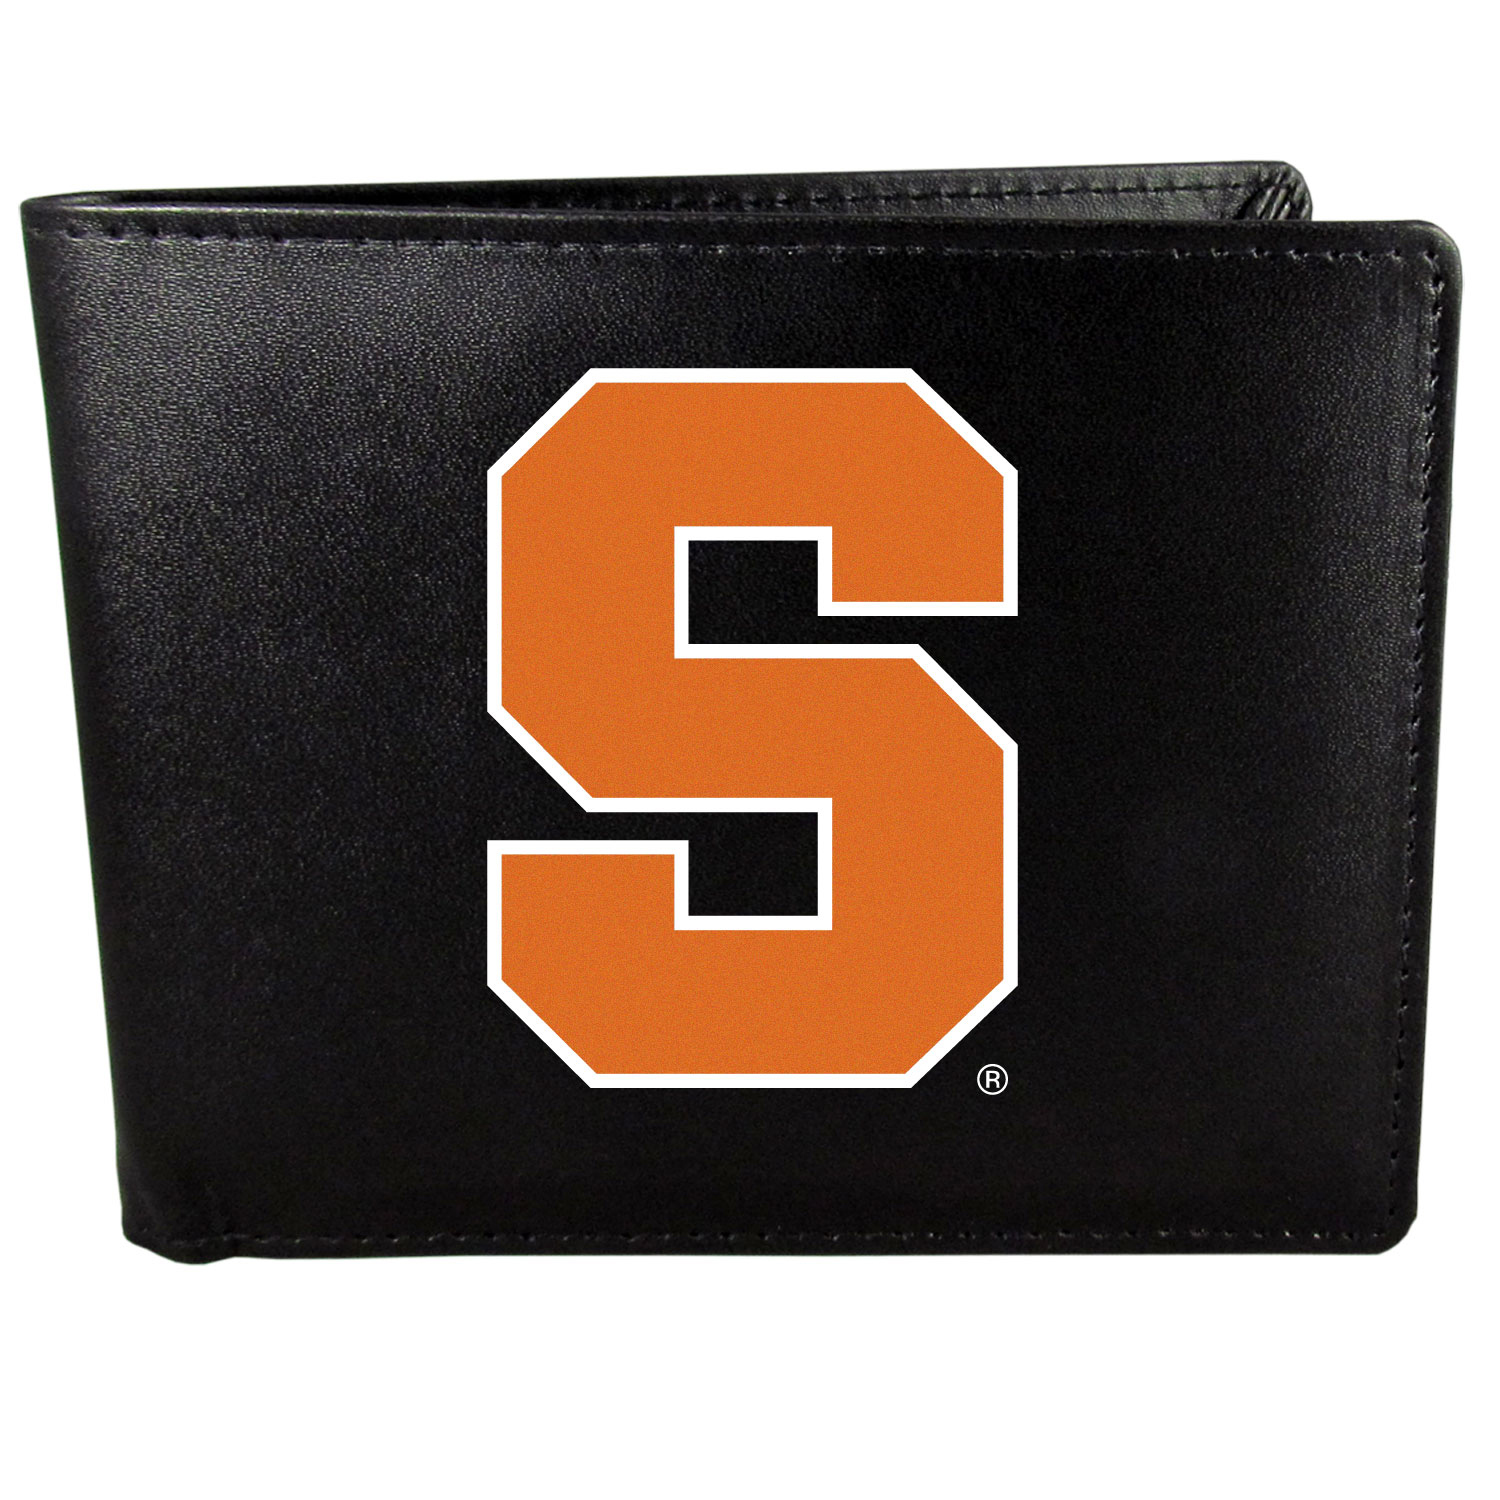 Syracuse Orange Leather Bi-fold Wallet, Large Logo - Our classic fine leather bi-fold wallet is meticulously crafted with genuine leather that will age beautifully so you will have a quality wallet for years to come. The wallet opens to a large, billfold pocket and numerous credit card slots and has a convenient windowed ID slot. The front of the wallet features an extra large Syracuse Orange printed logo.